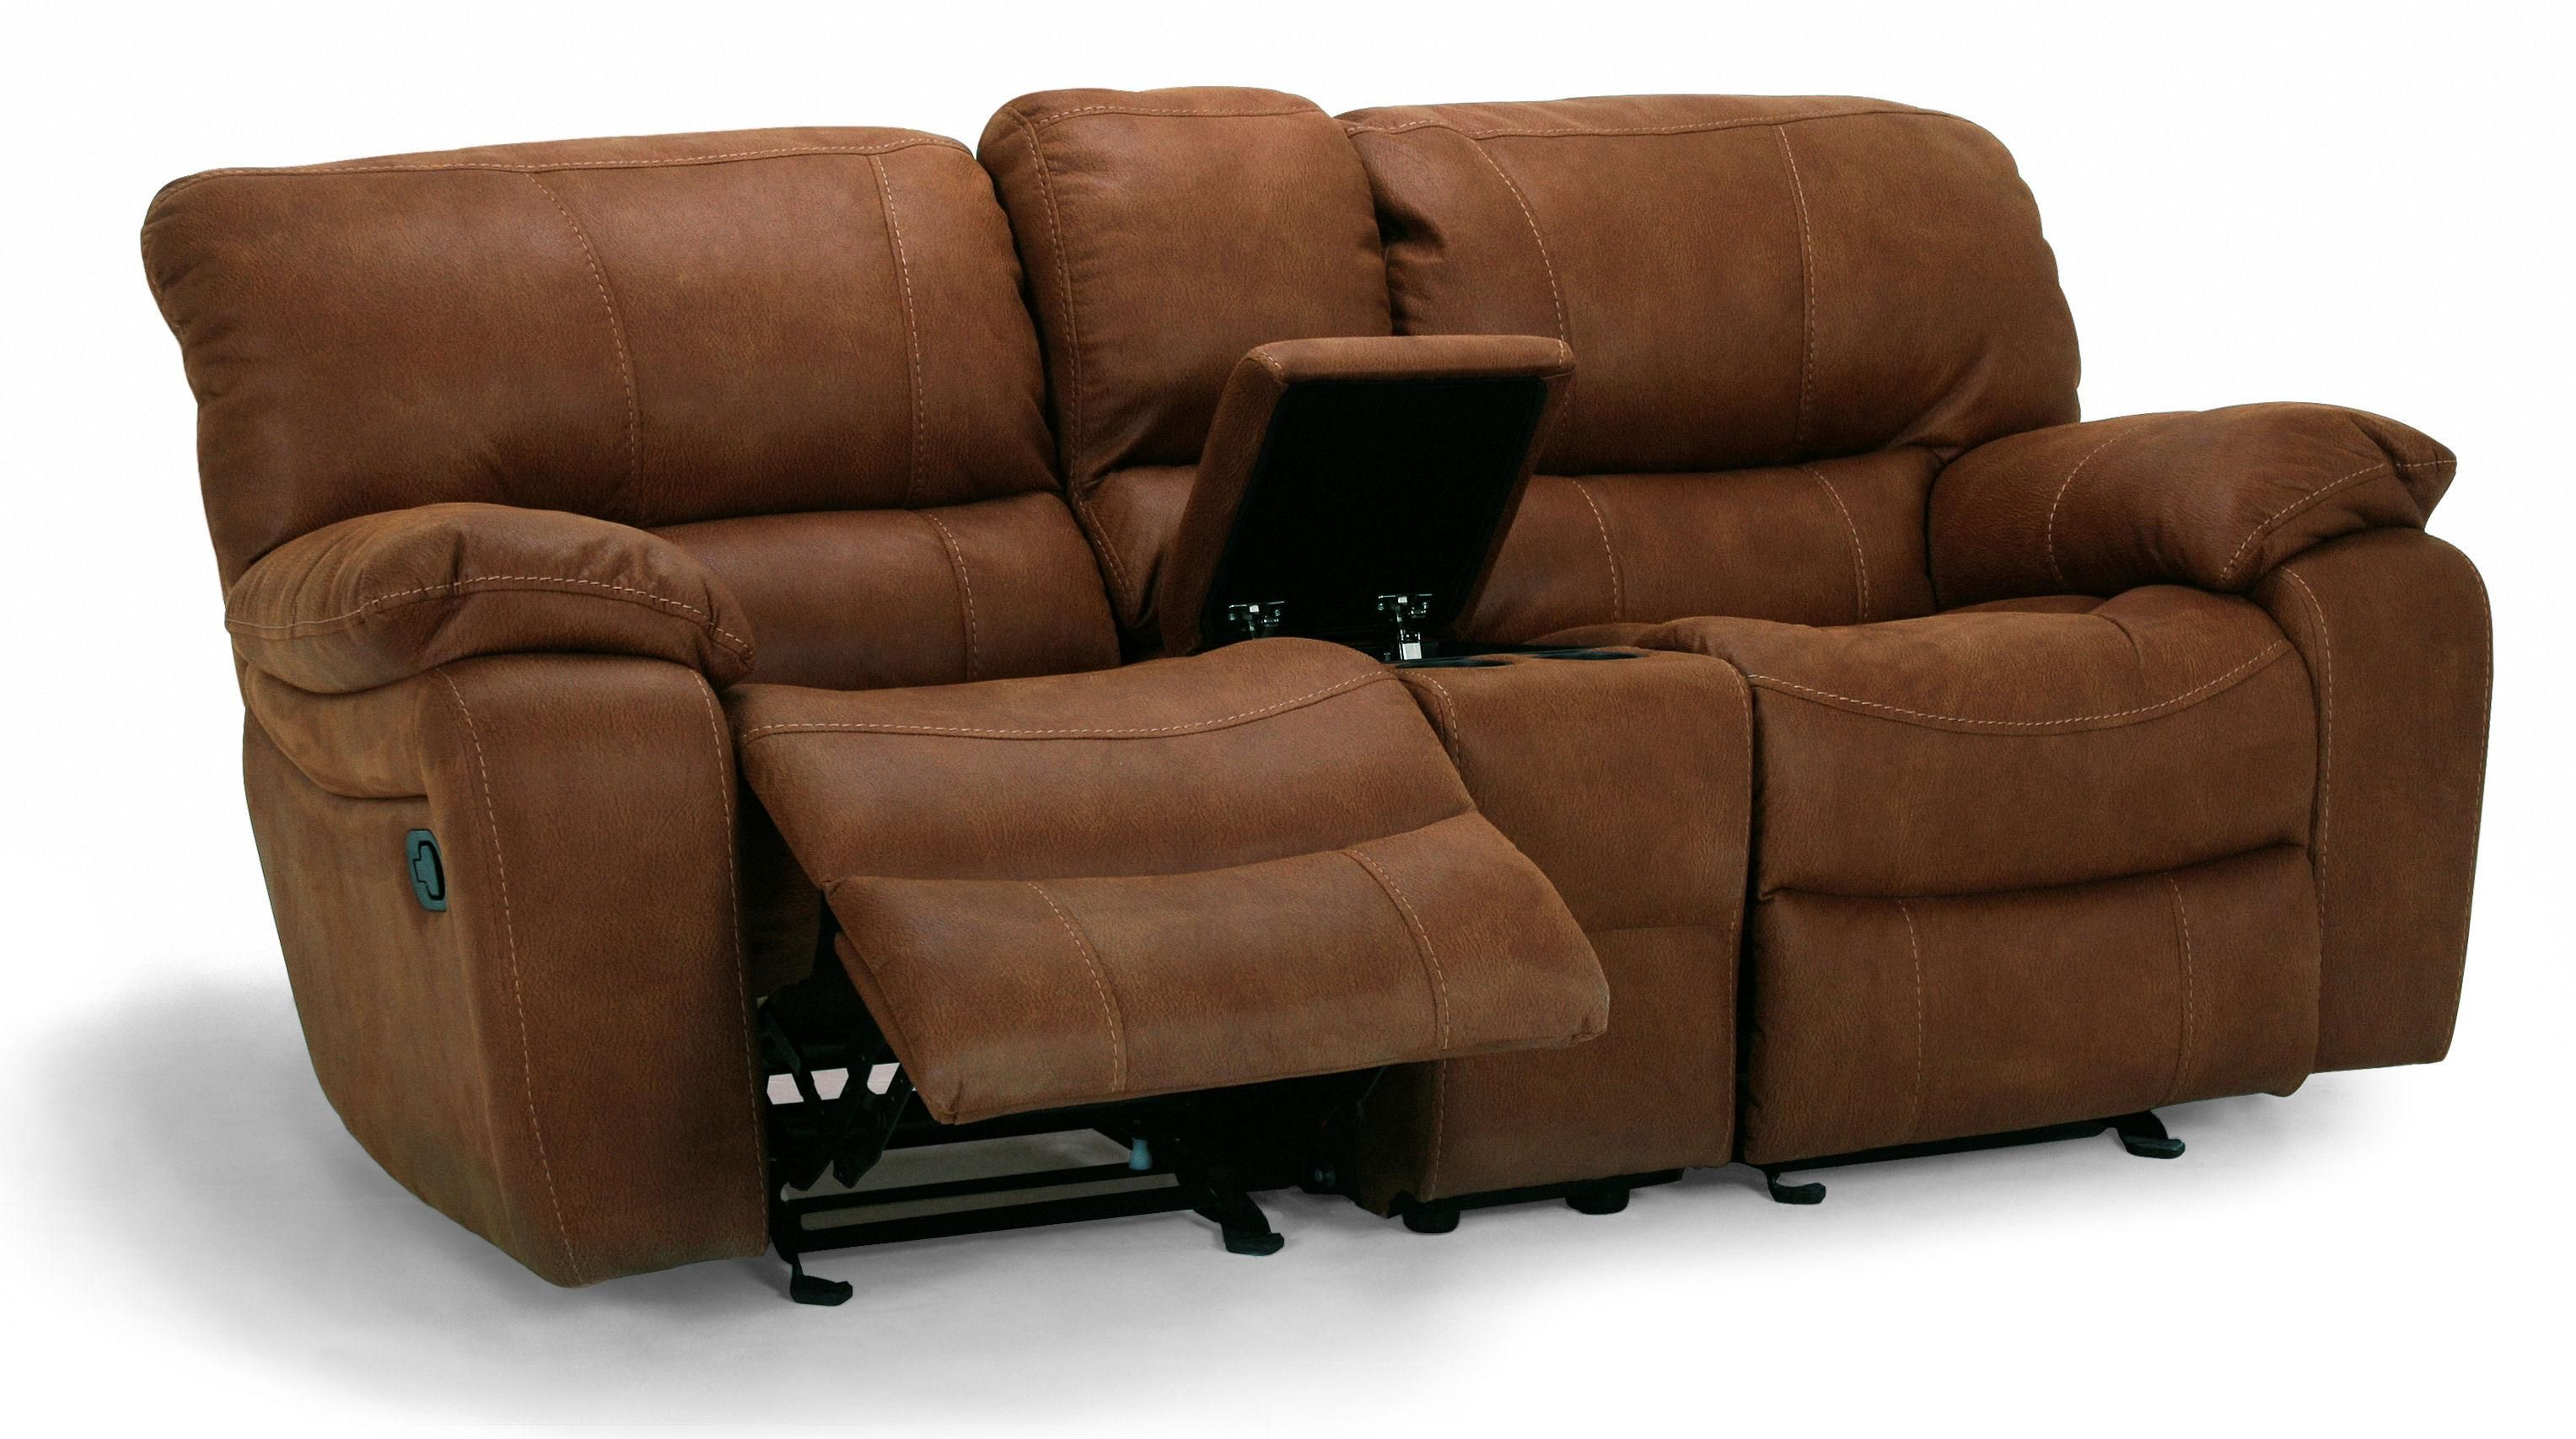 Flexsteel Furniture Latitudes Grandview Collection featuring double reclining loveseat with center console double reclining  sc 1 st  Pinterest : flexsteel sofa recliners - islam-shia.org